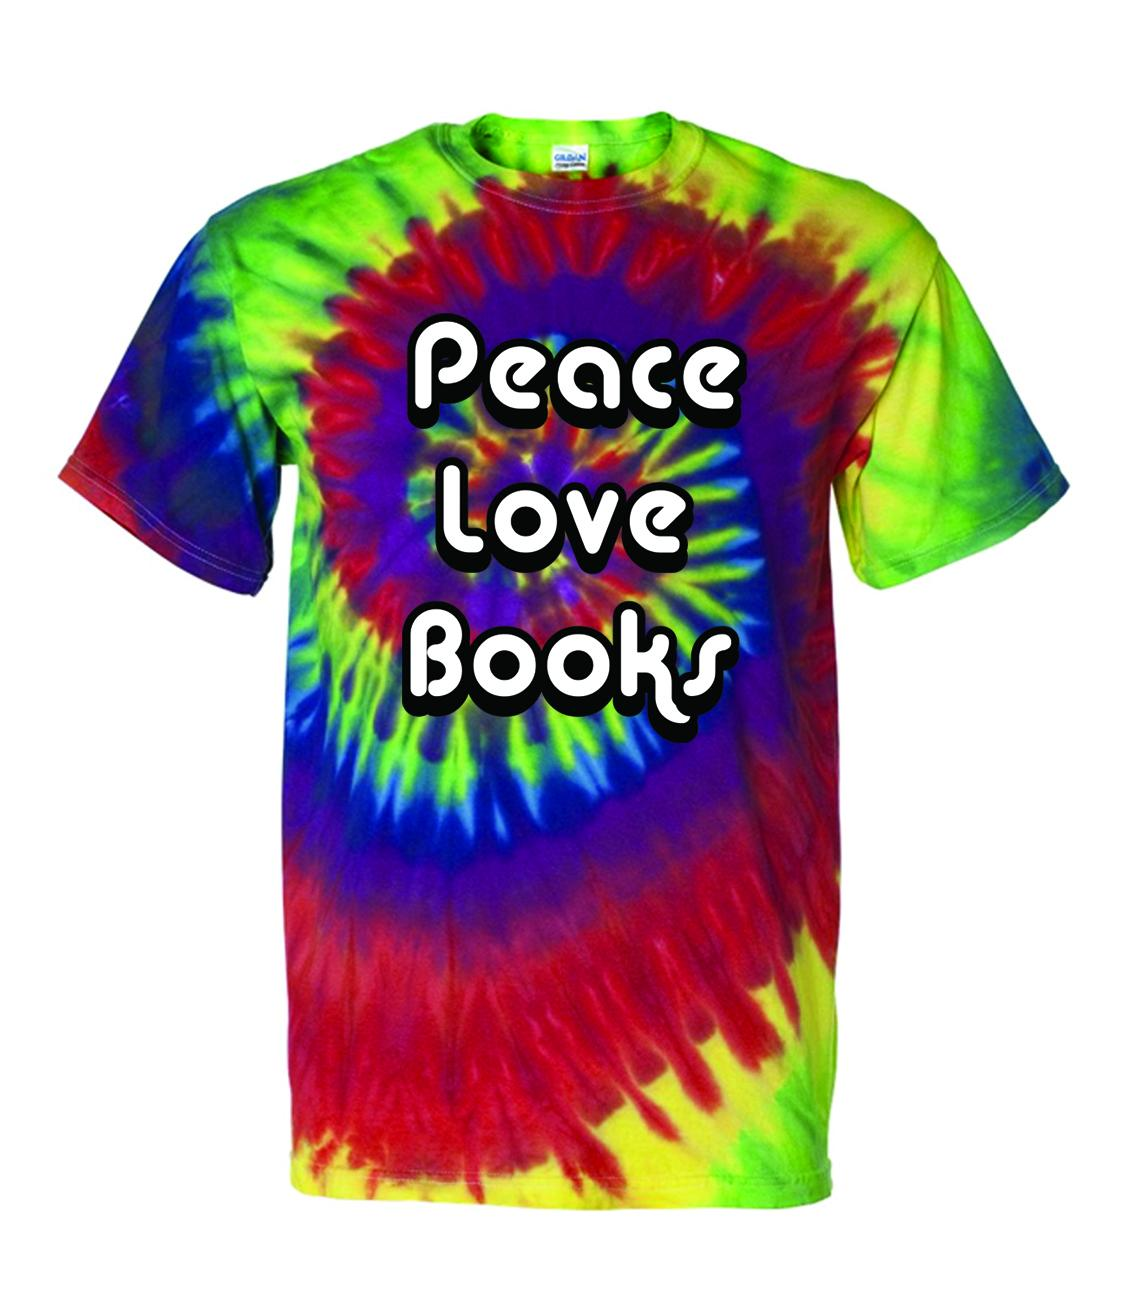 Peace love books t shirt anderson 39 s bookshop for Entire book on shirt